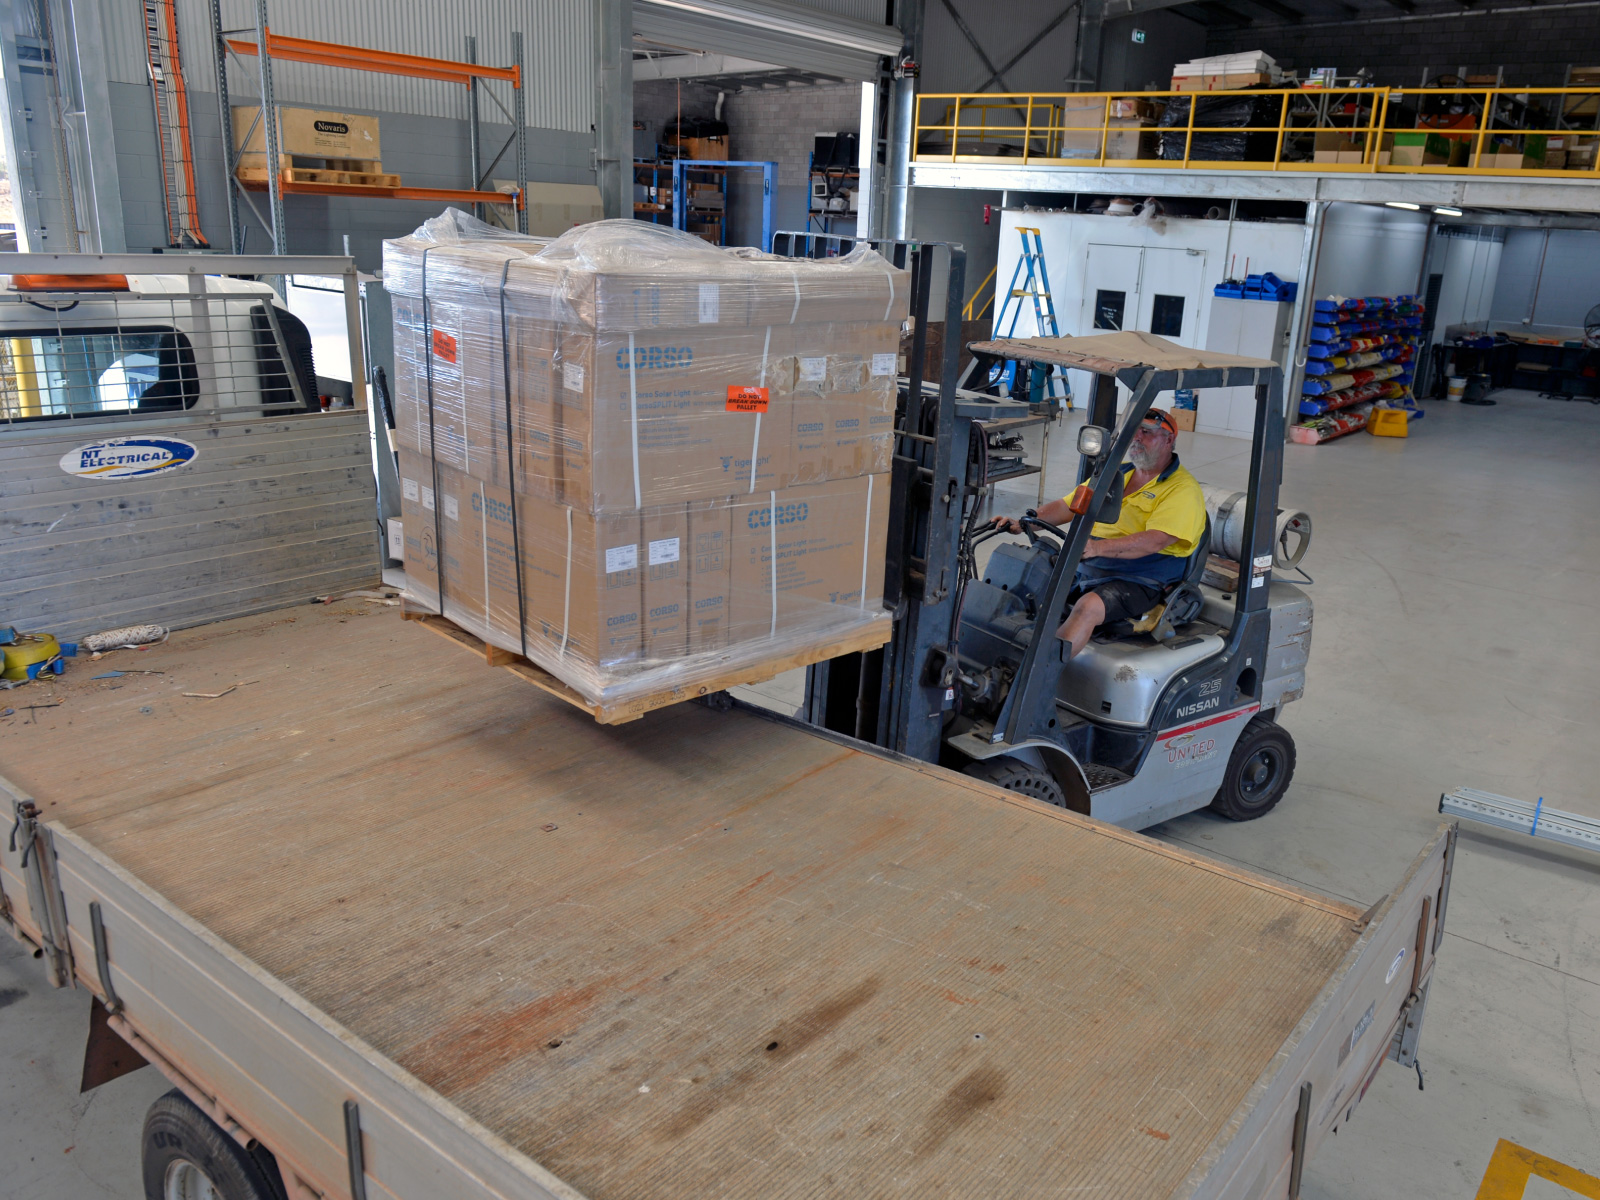 Interior facility with forklift loading electrical components onto flatbed truck.